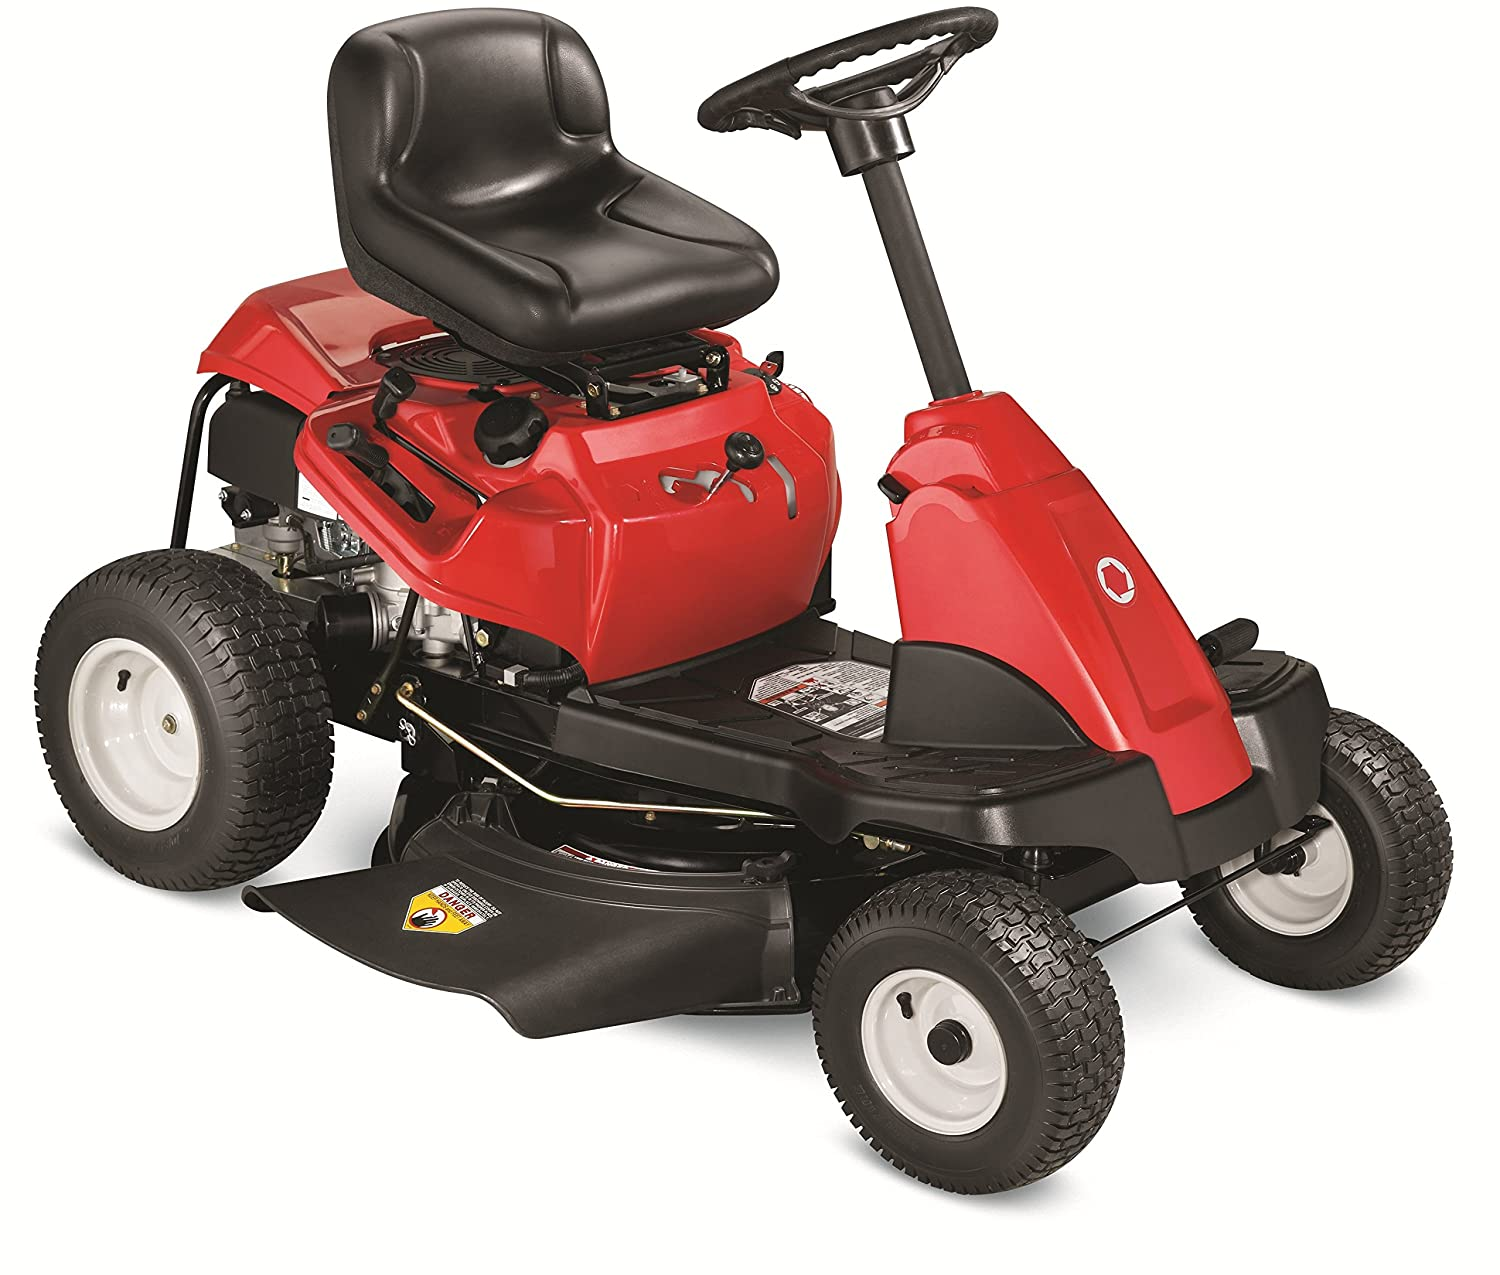 Amazon.com : Troy-Bilt 30-Inch Neighborhood Riding Lawn Mower ...